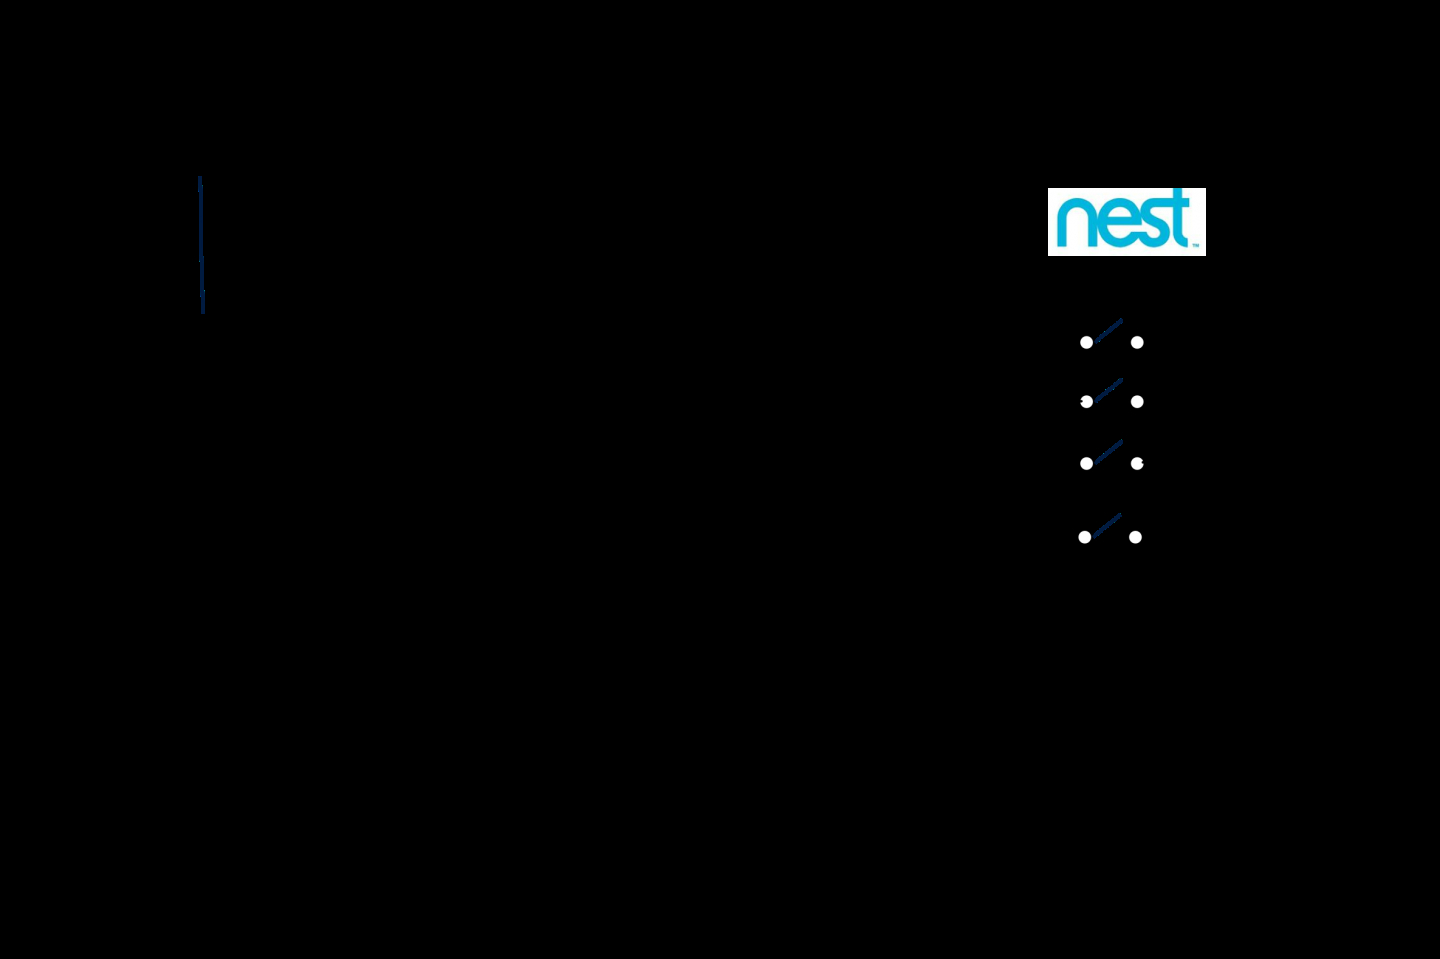 hight resolution of nest dual fuel wiring diagram download nest thermostat wiring diagram heat pump lovely jf63i wiring download wiring diagram